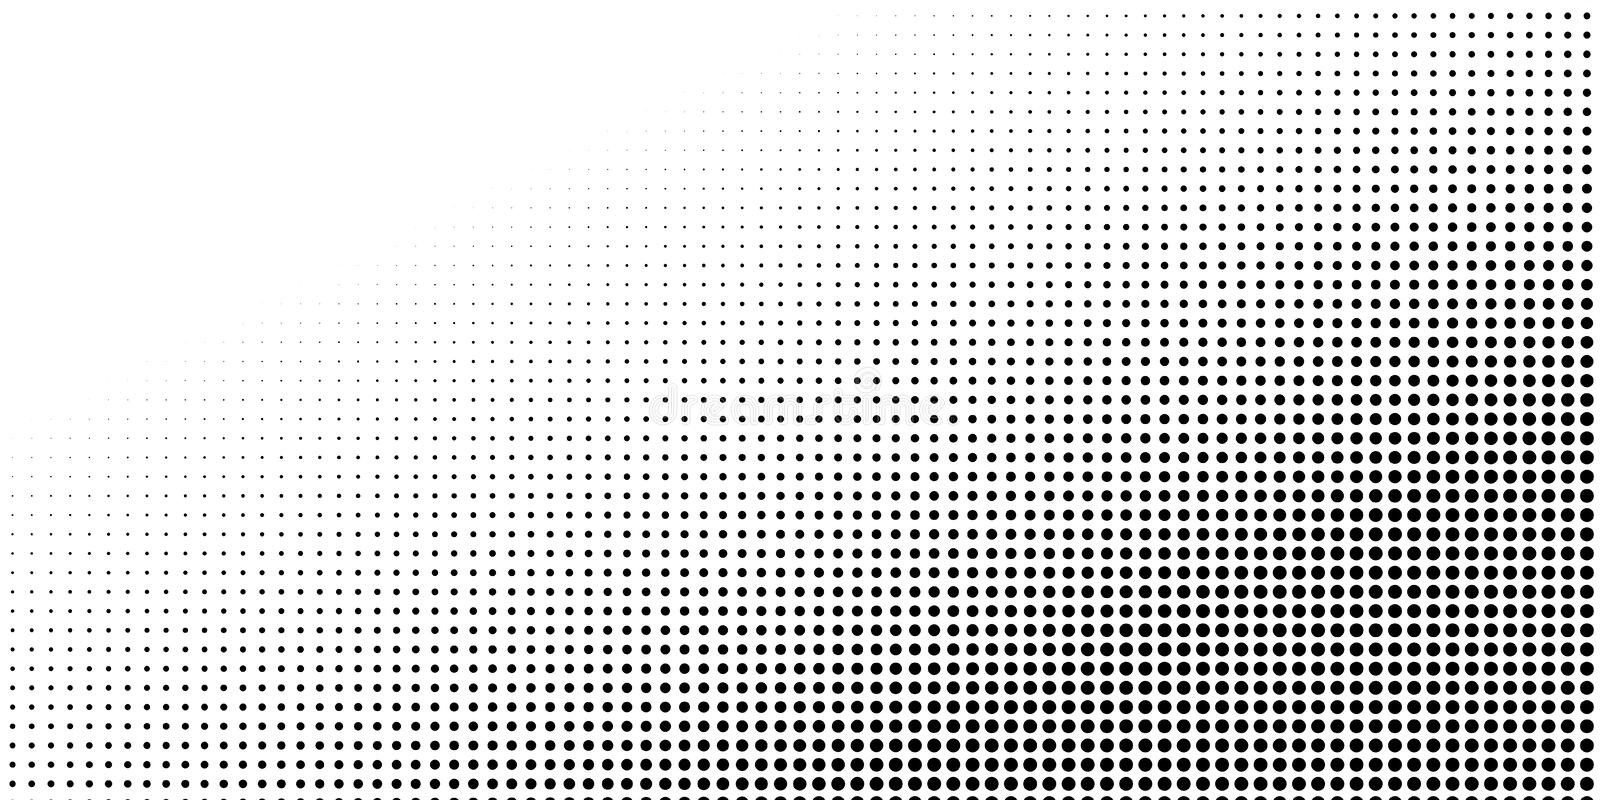 Abstract halftone texture with dots. stock images